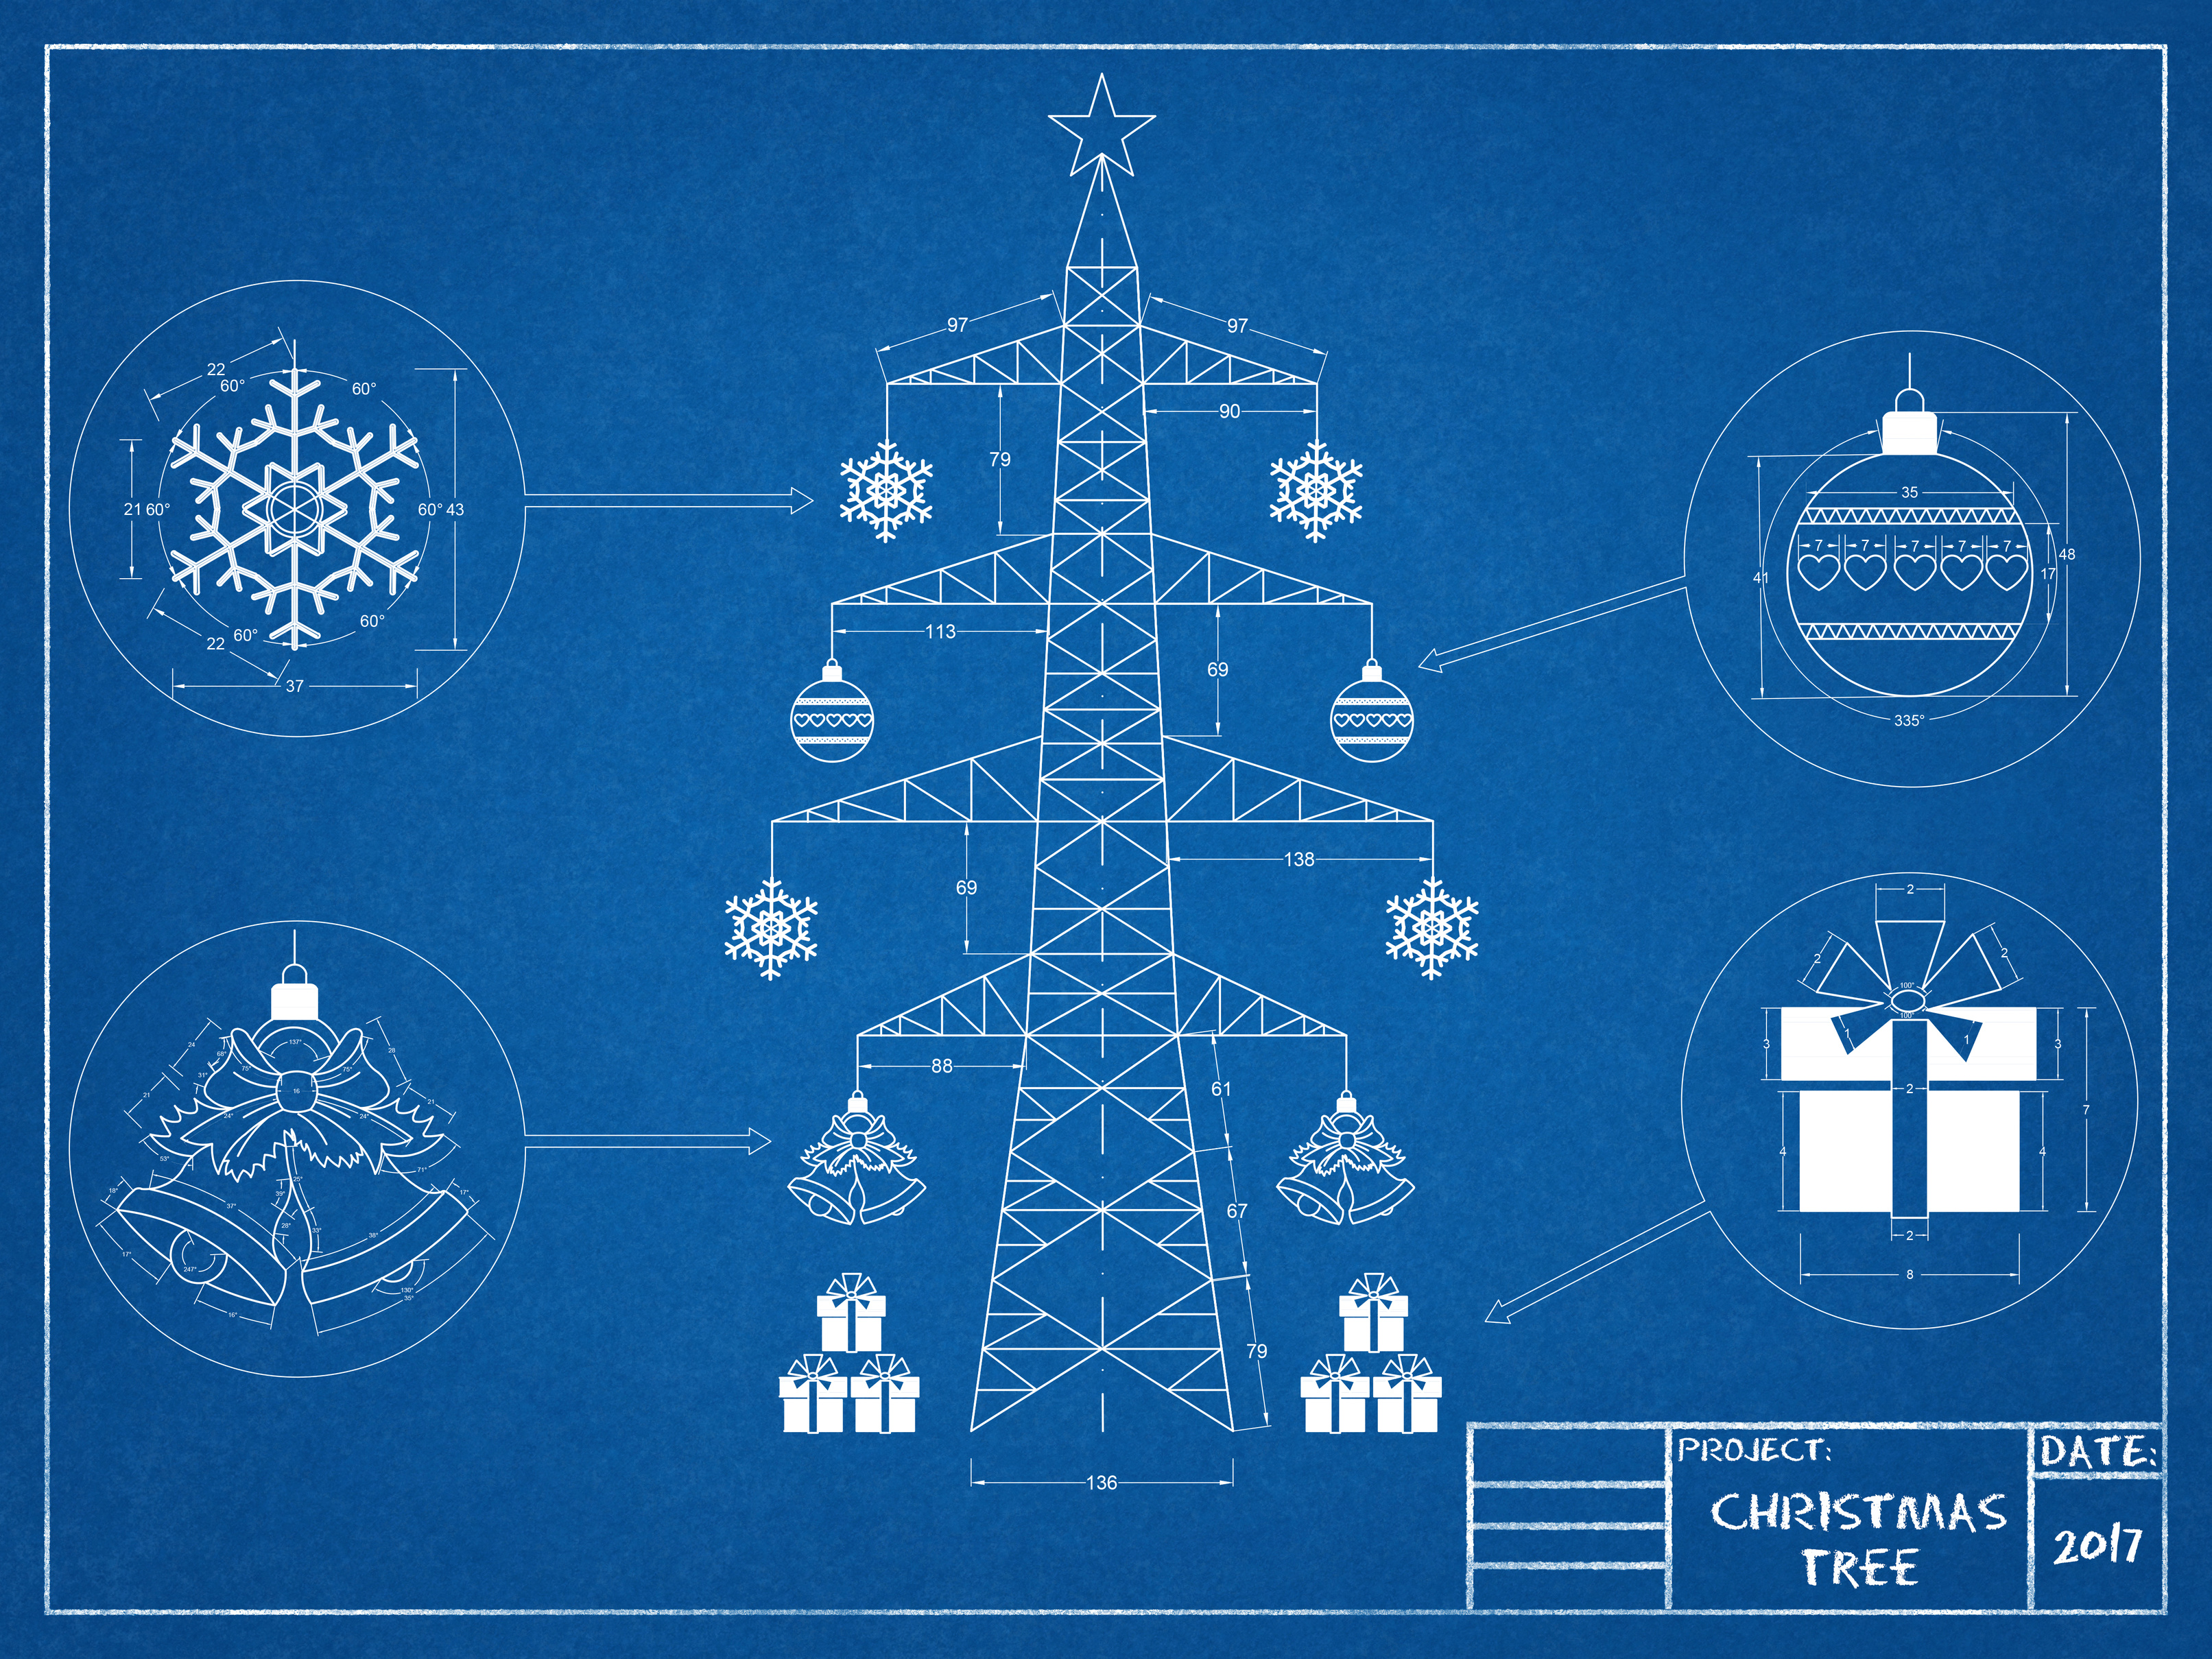 Christmas tree - blueprint